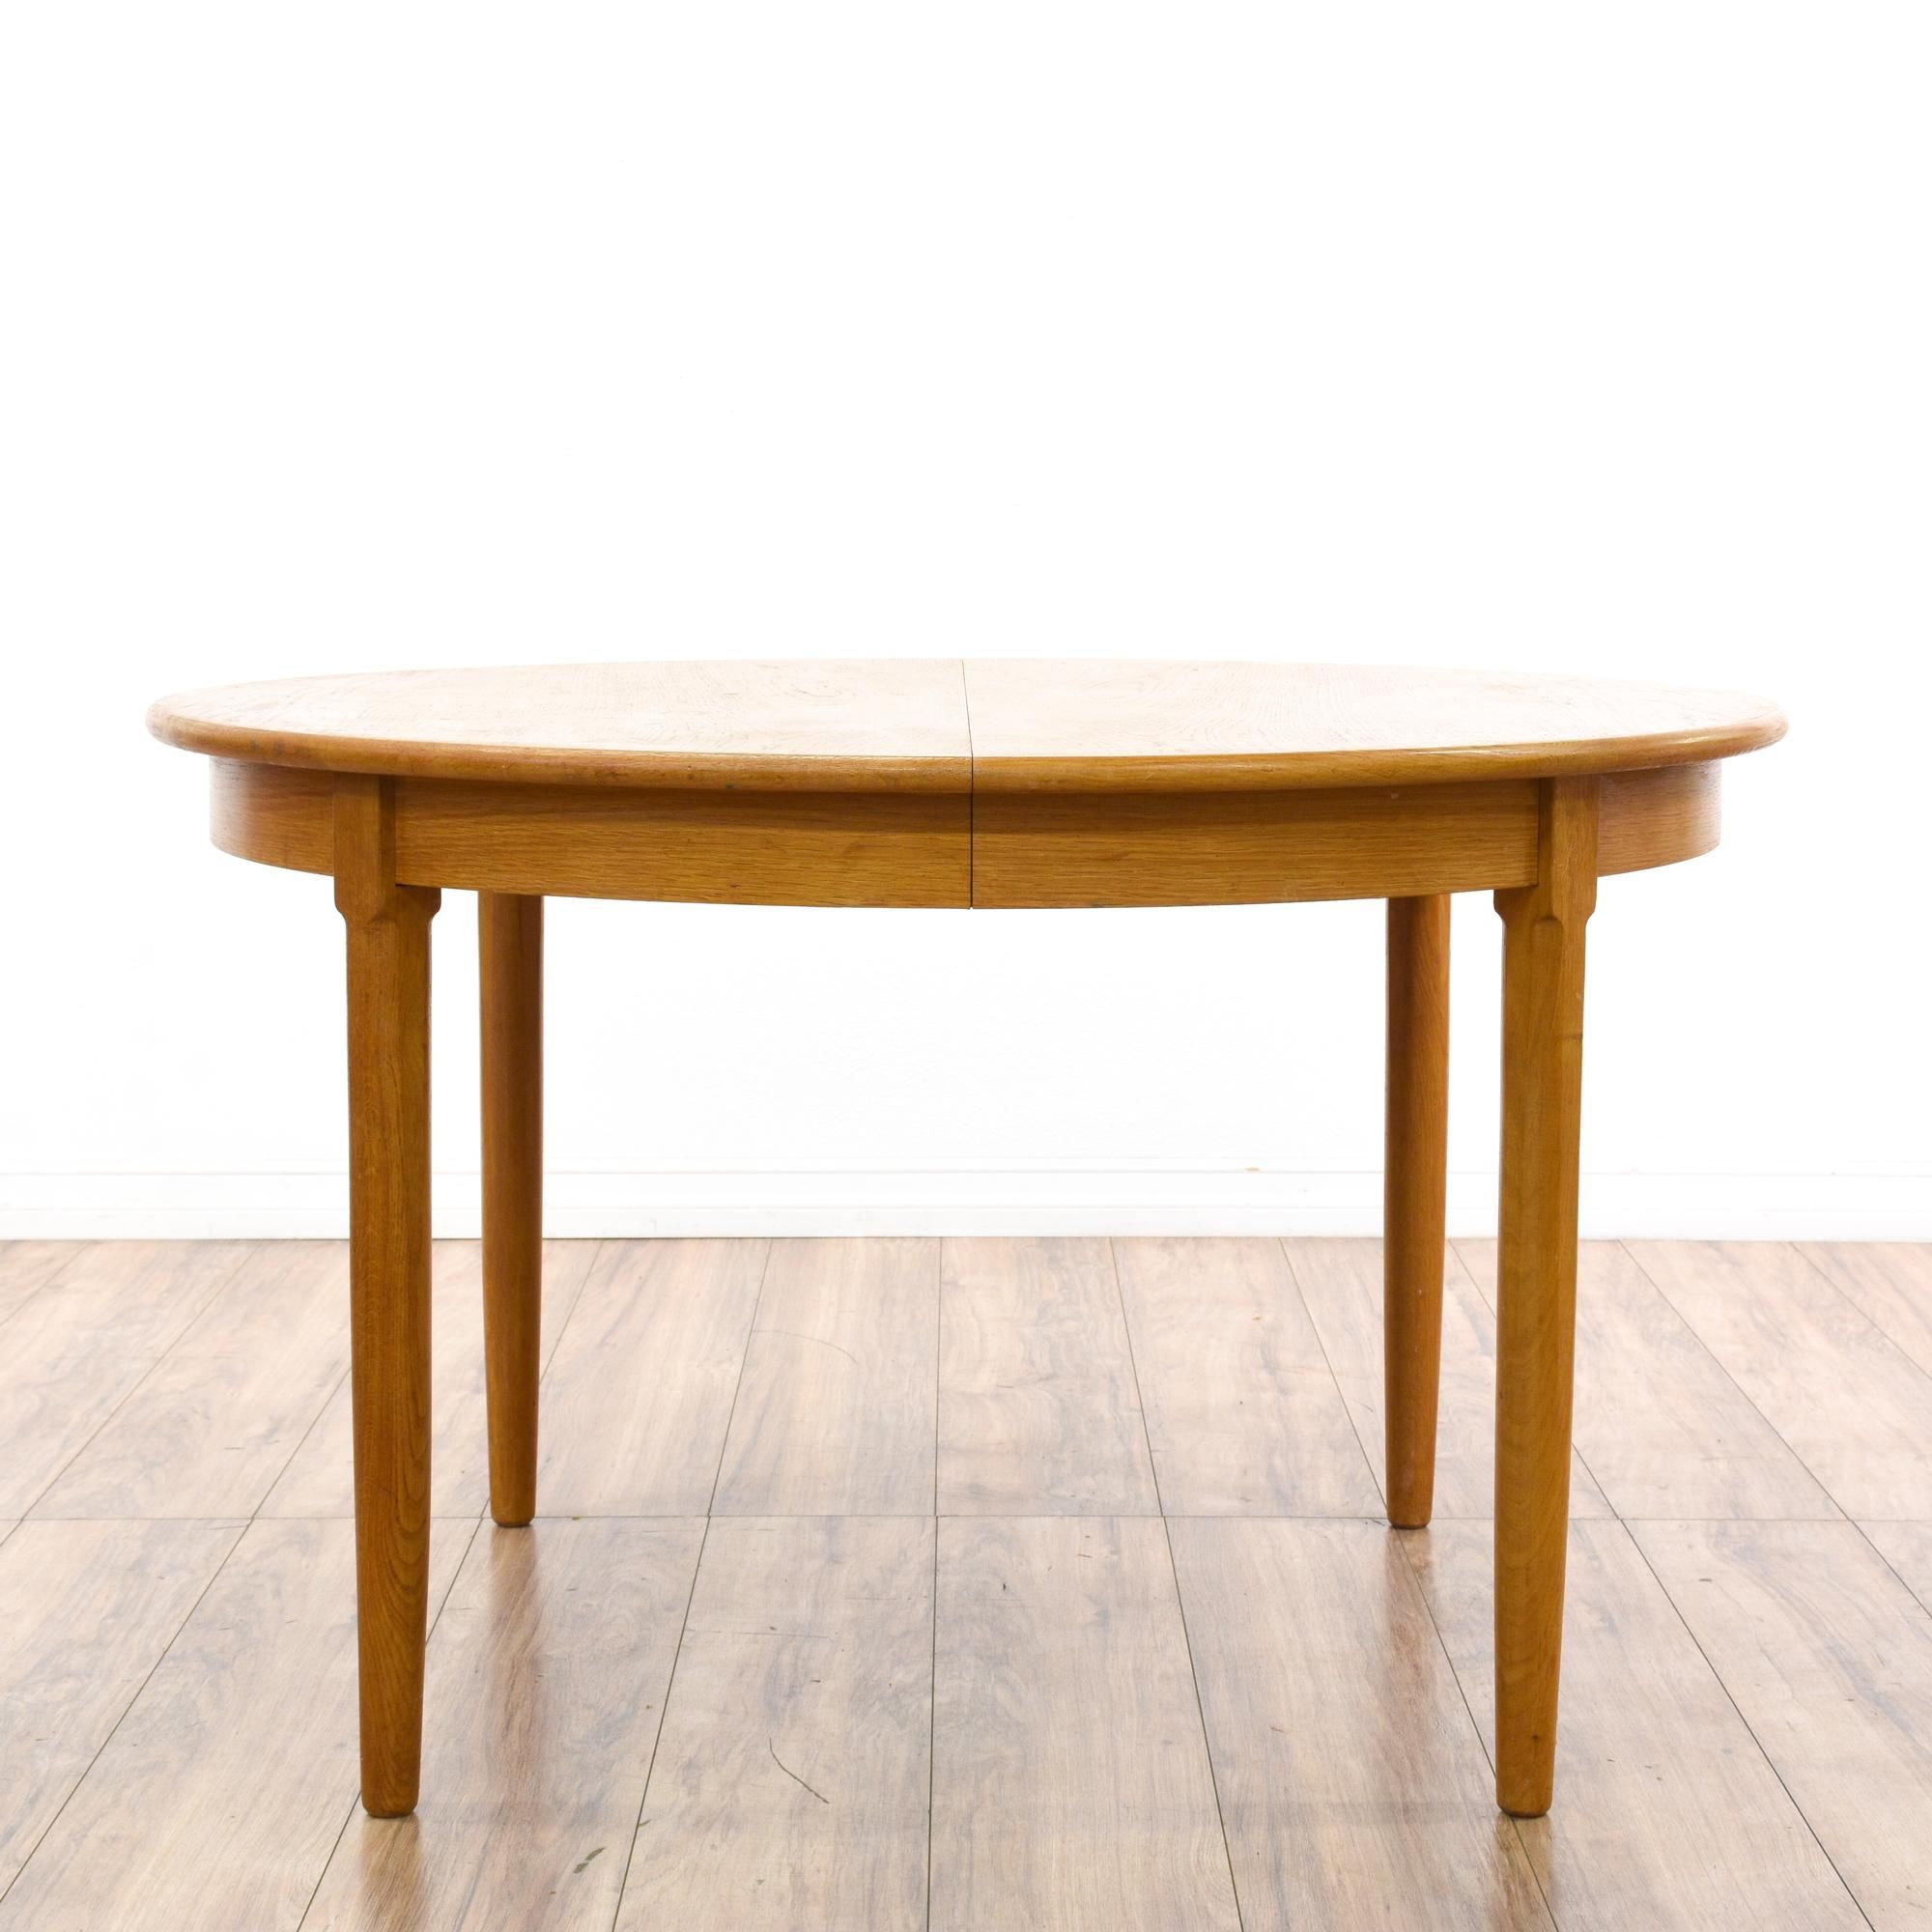 This mid century modern dining table is featured in a solid wood